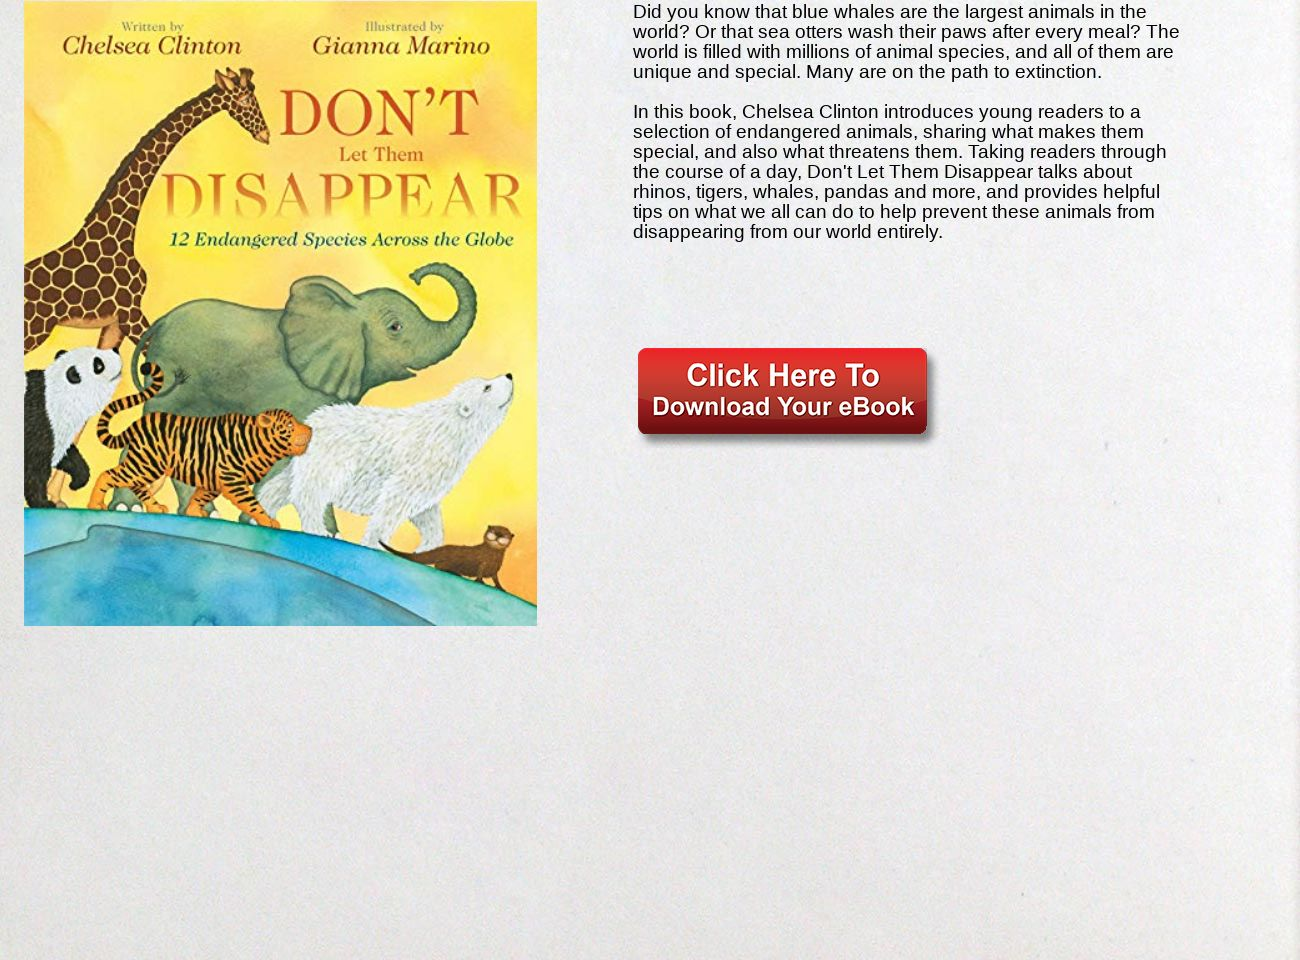 Download Ebook Don't Let Them Disappear PDF: text, images